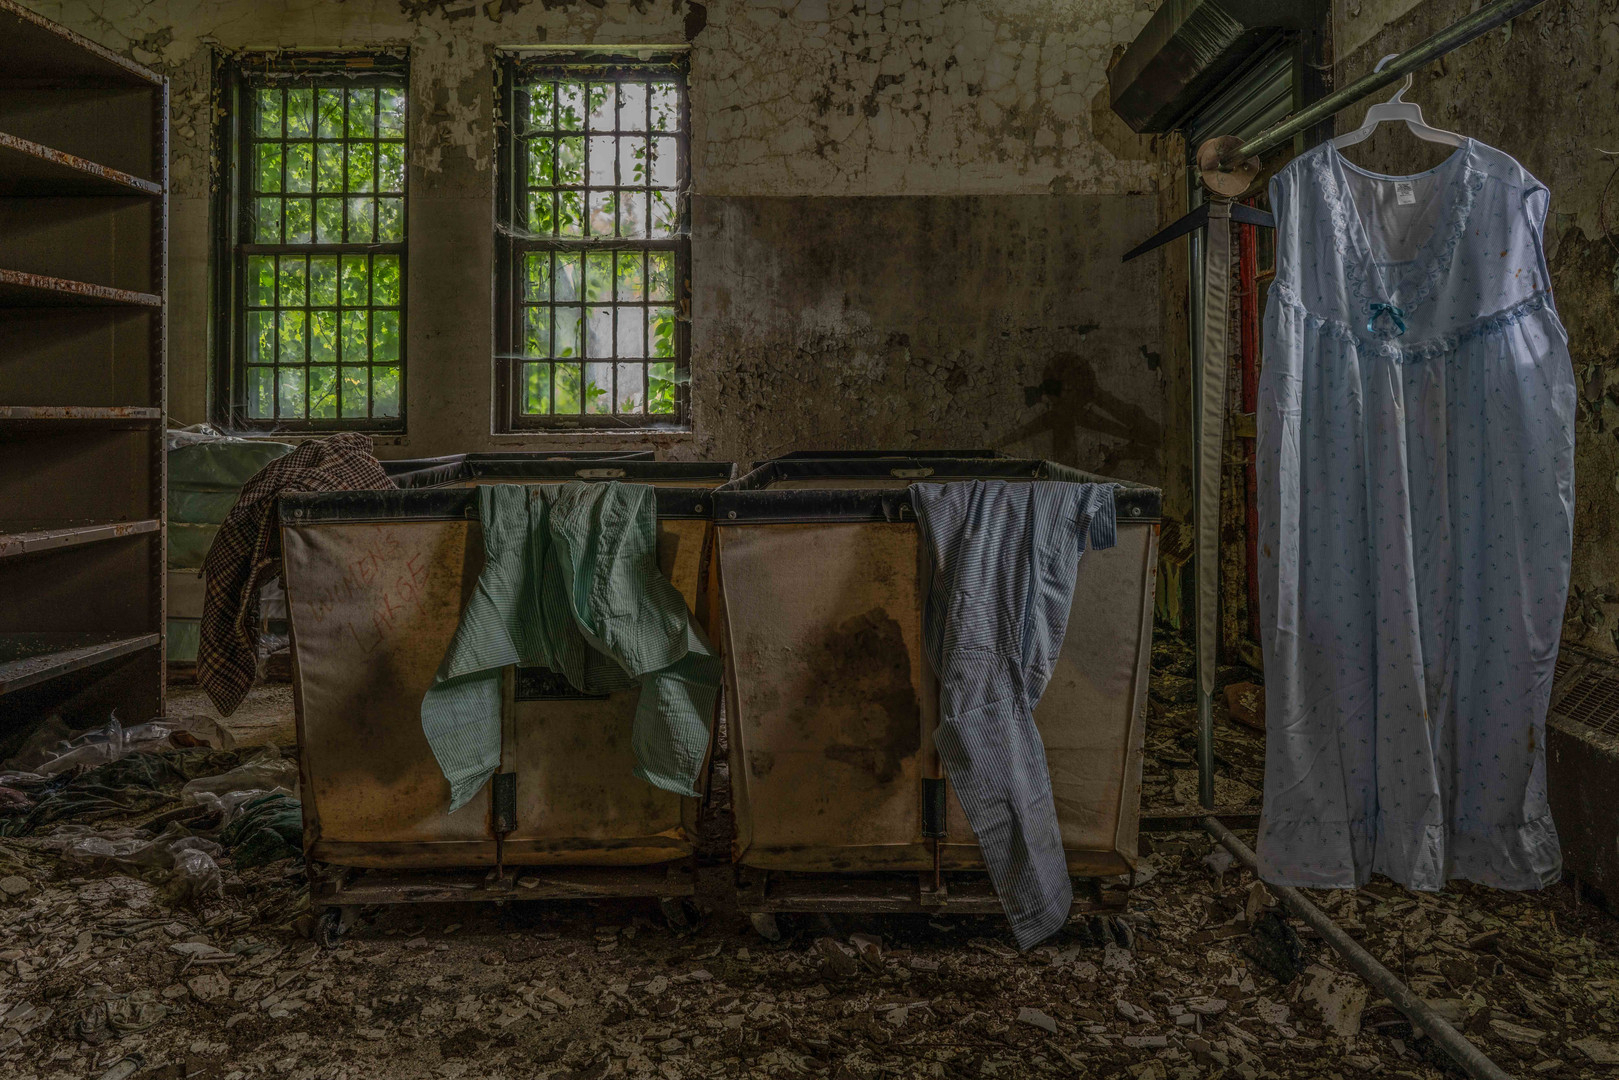 Clothing Dispensary, State Hospital